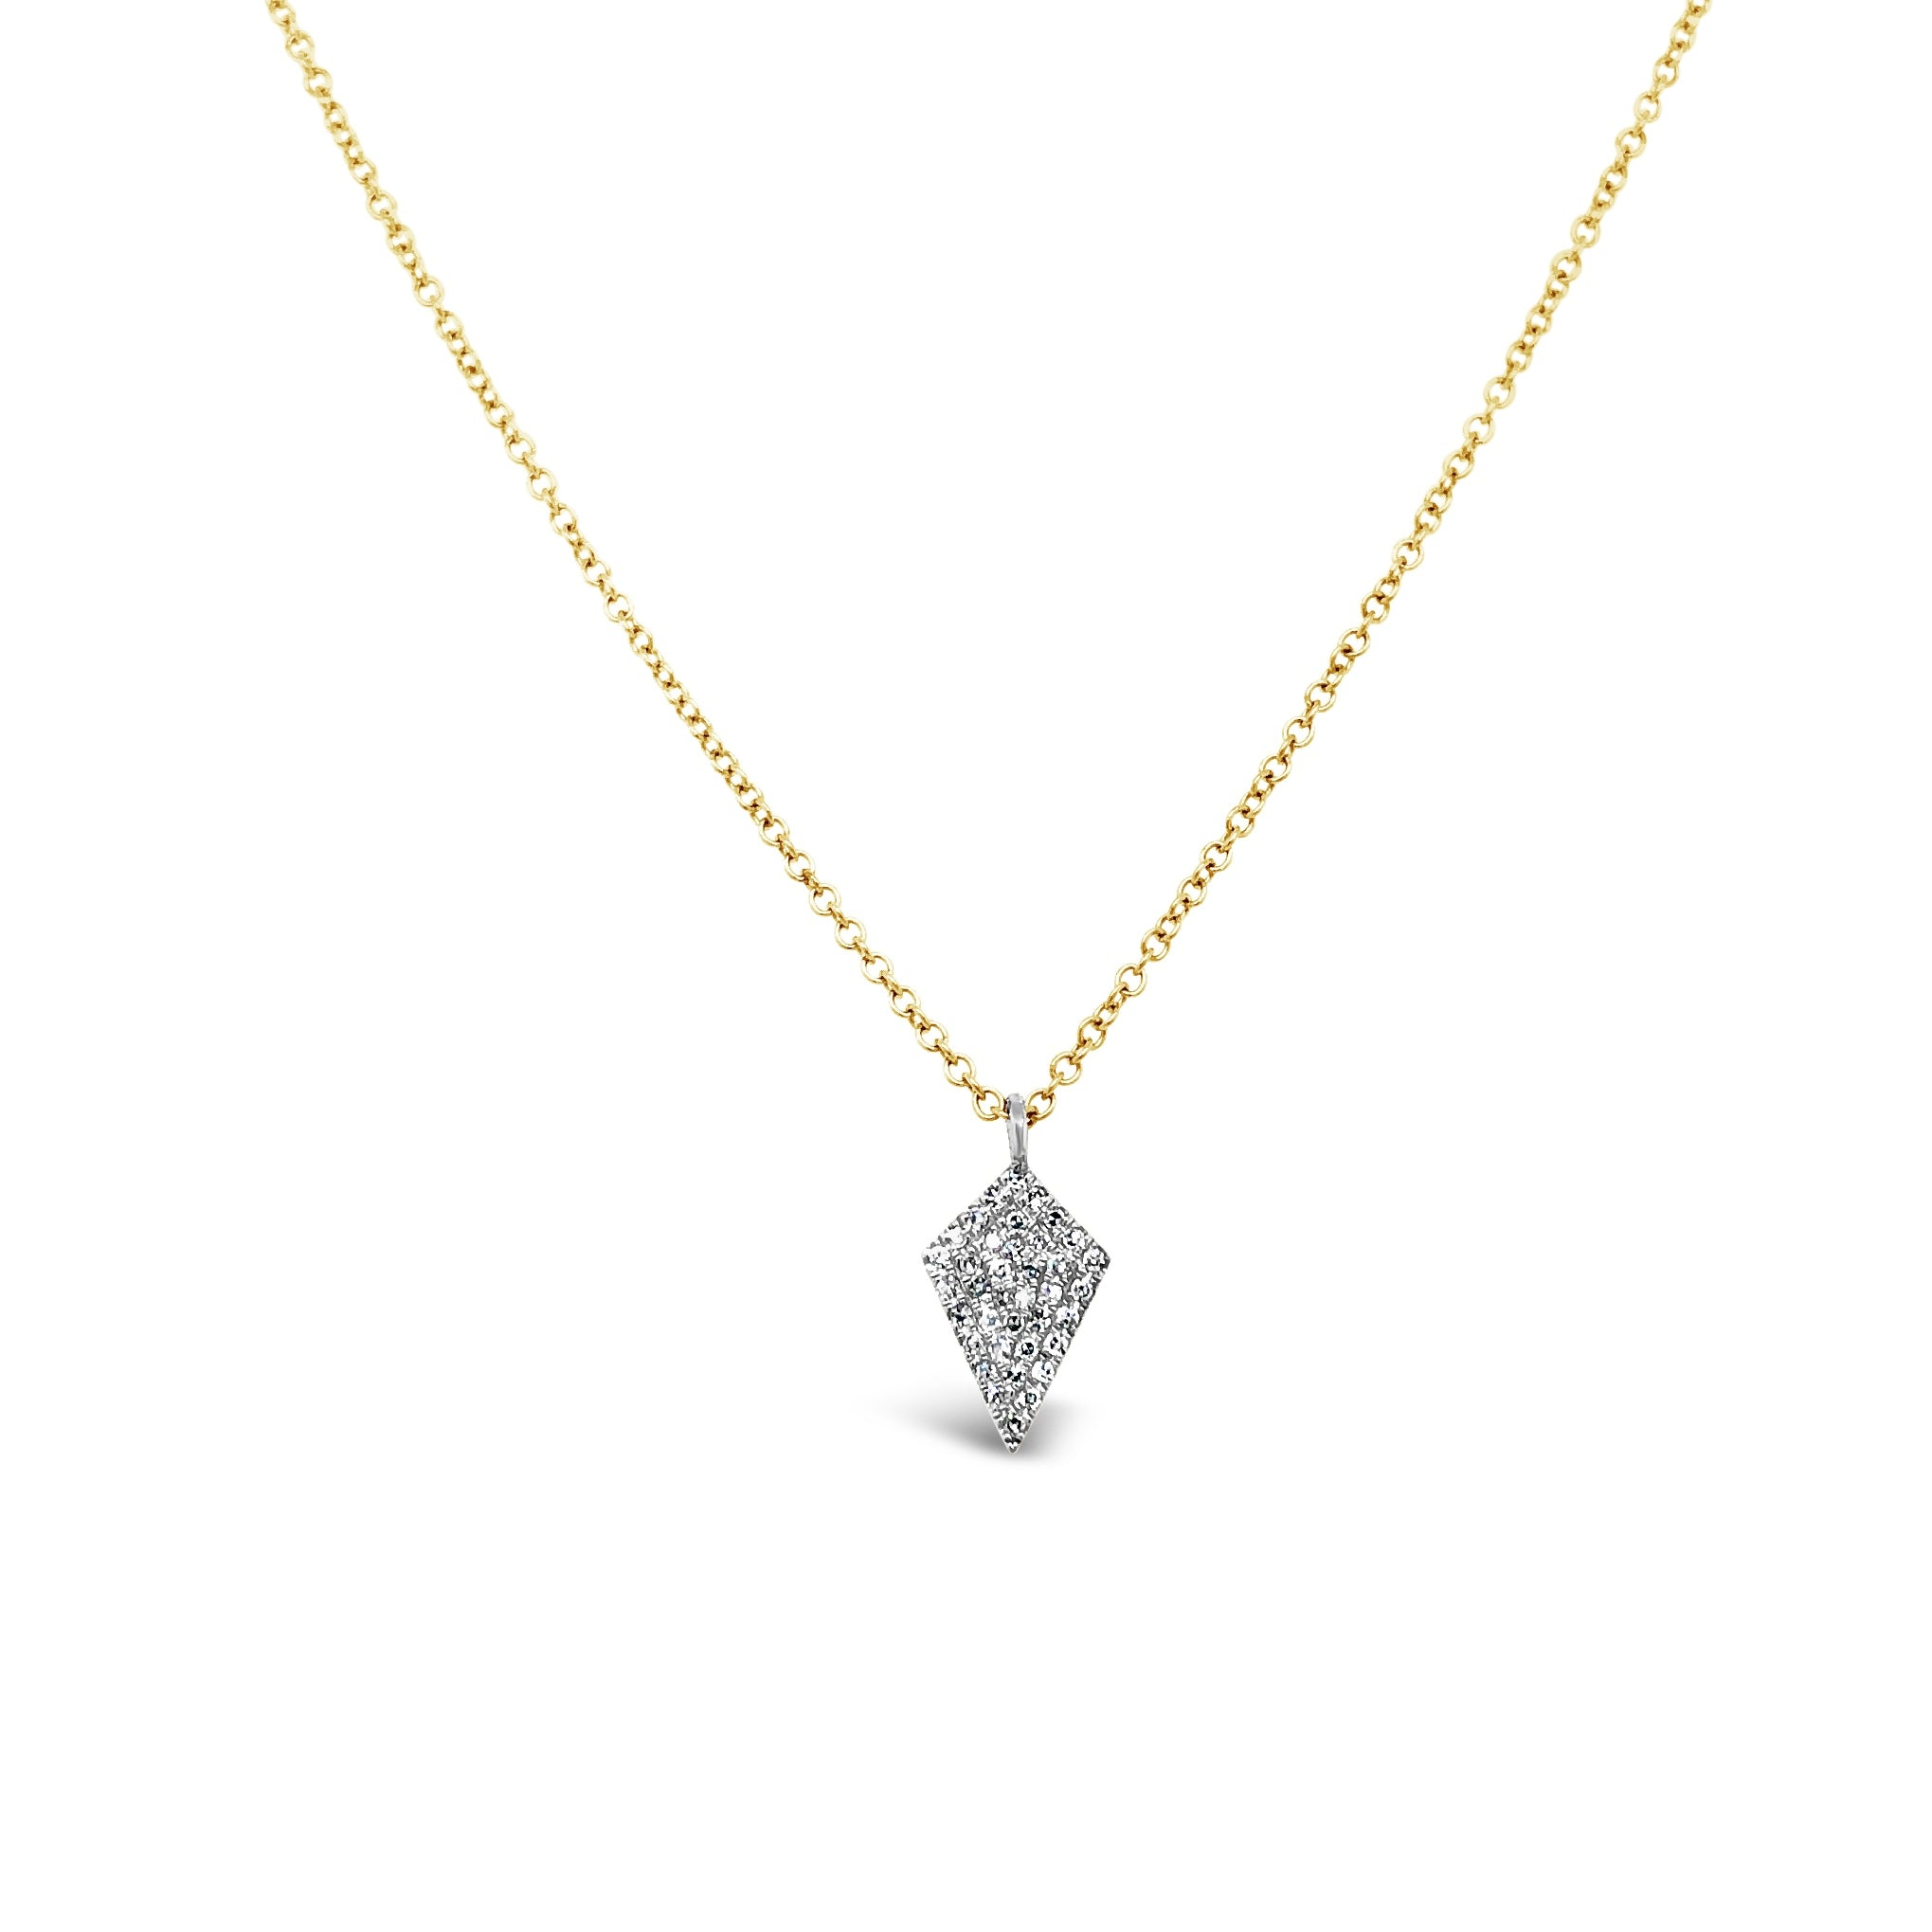 Pave Diamond Kite Shaped Pendant